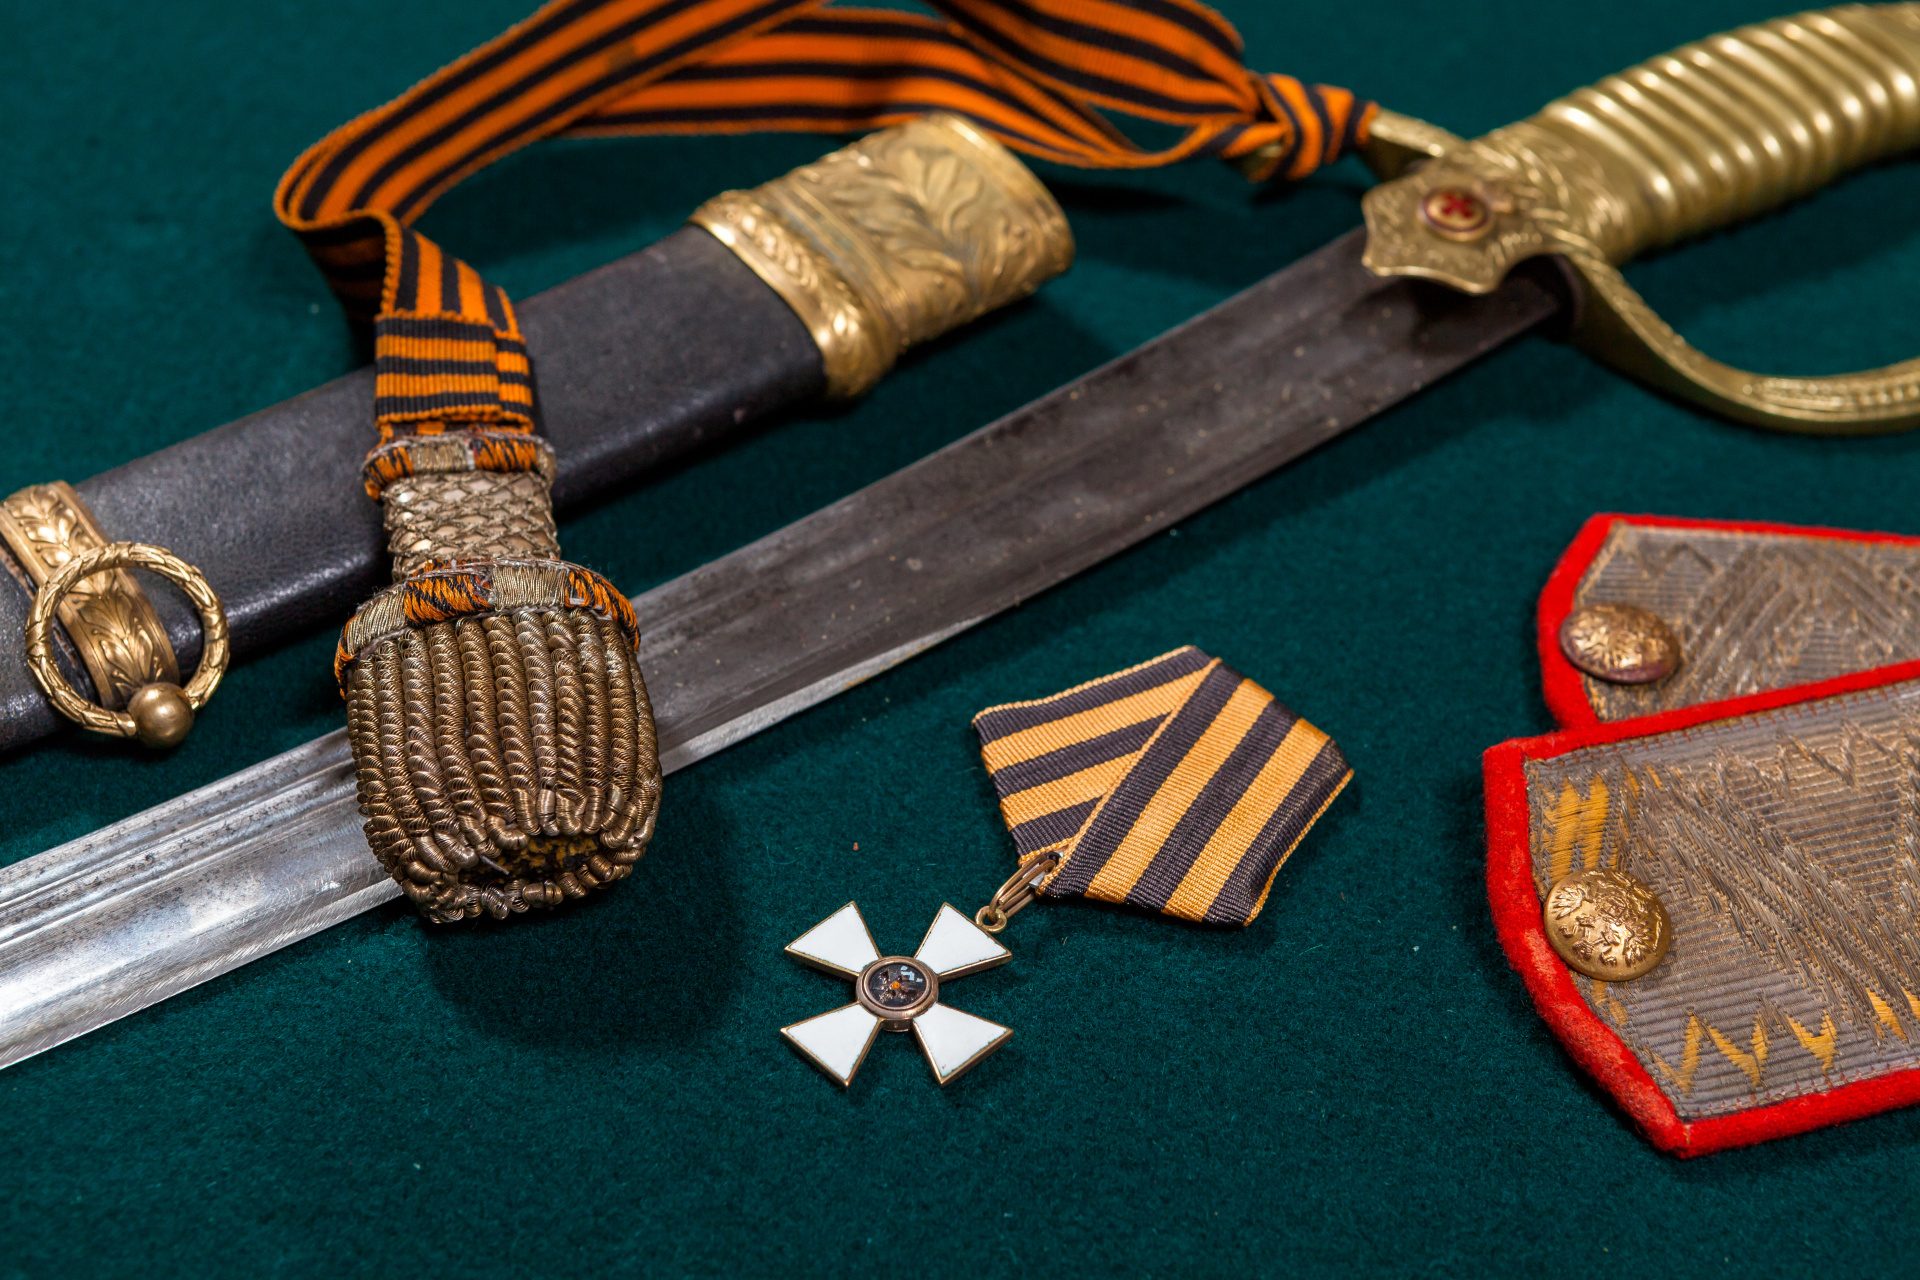 Awards, uniforms and weapons